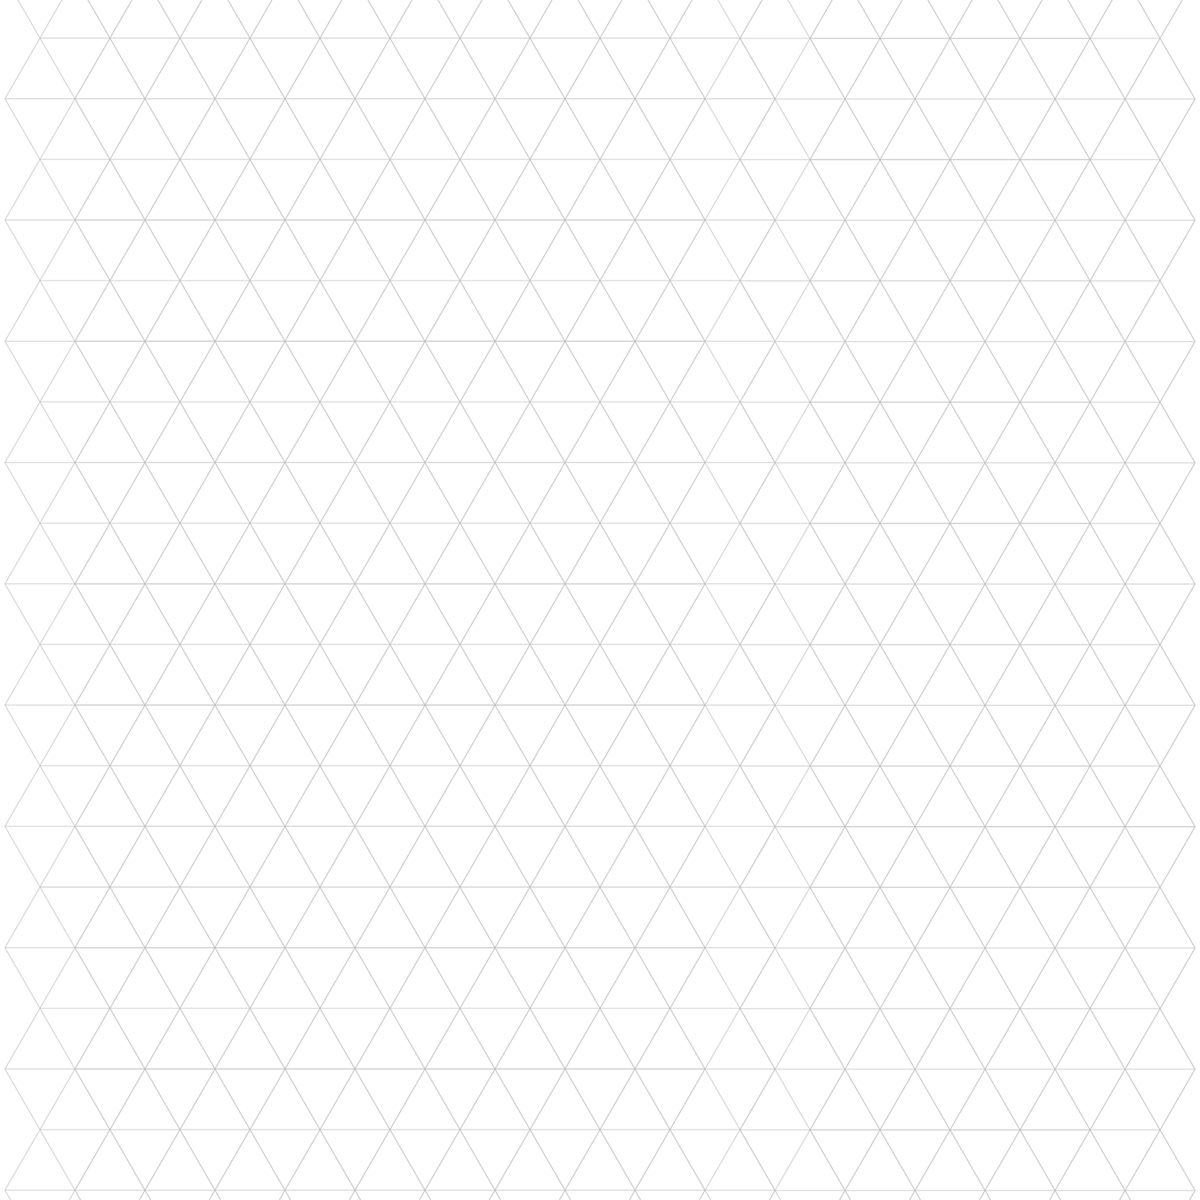 Free Equilateral Triangle Graph Paper The Quilter s Planner